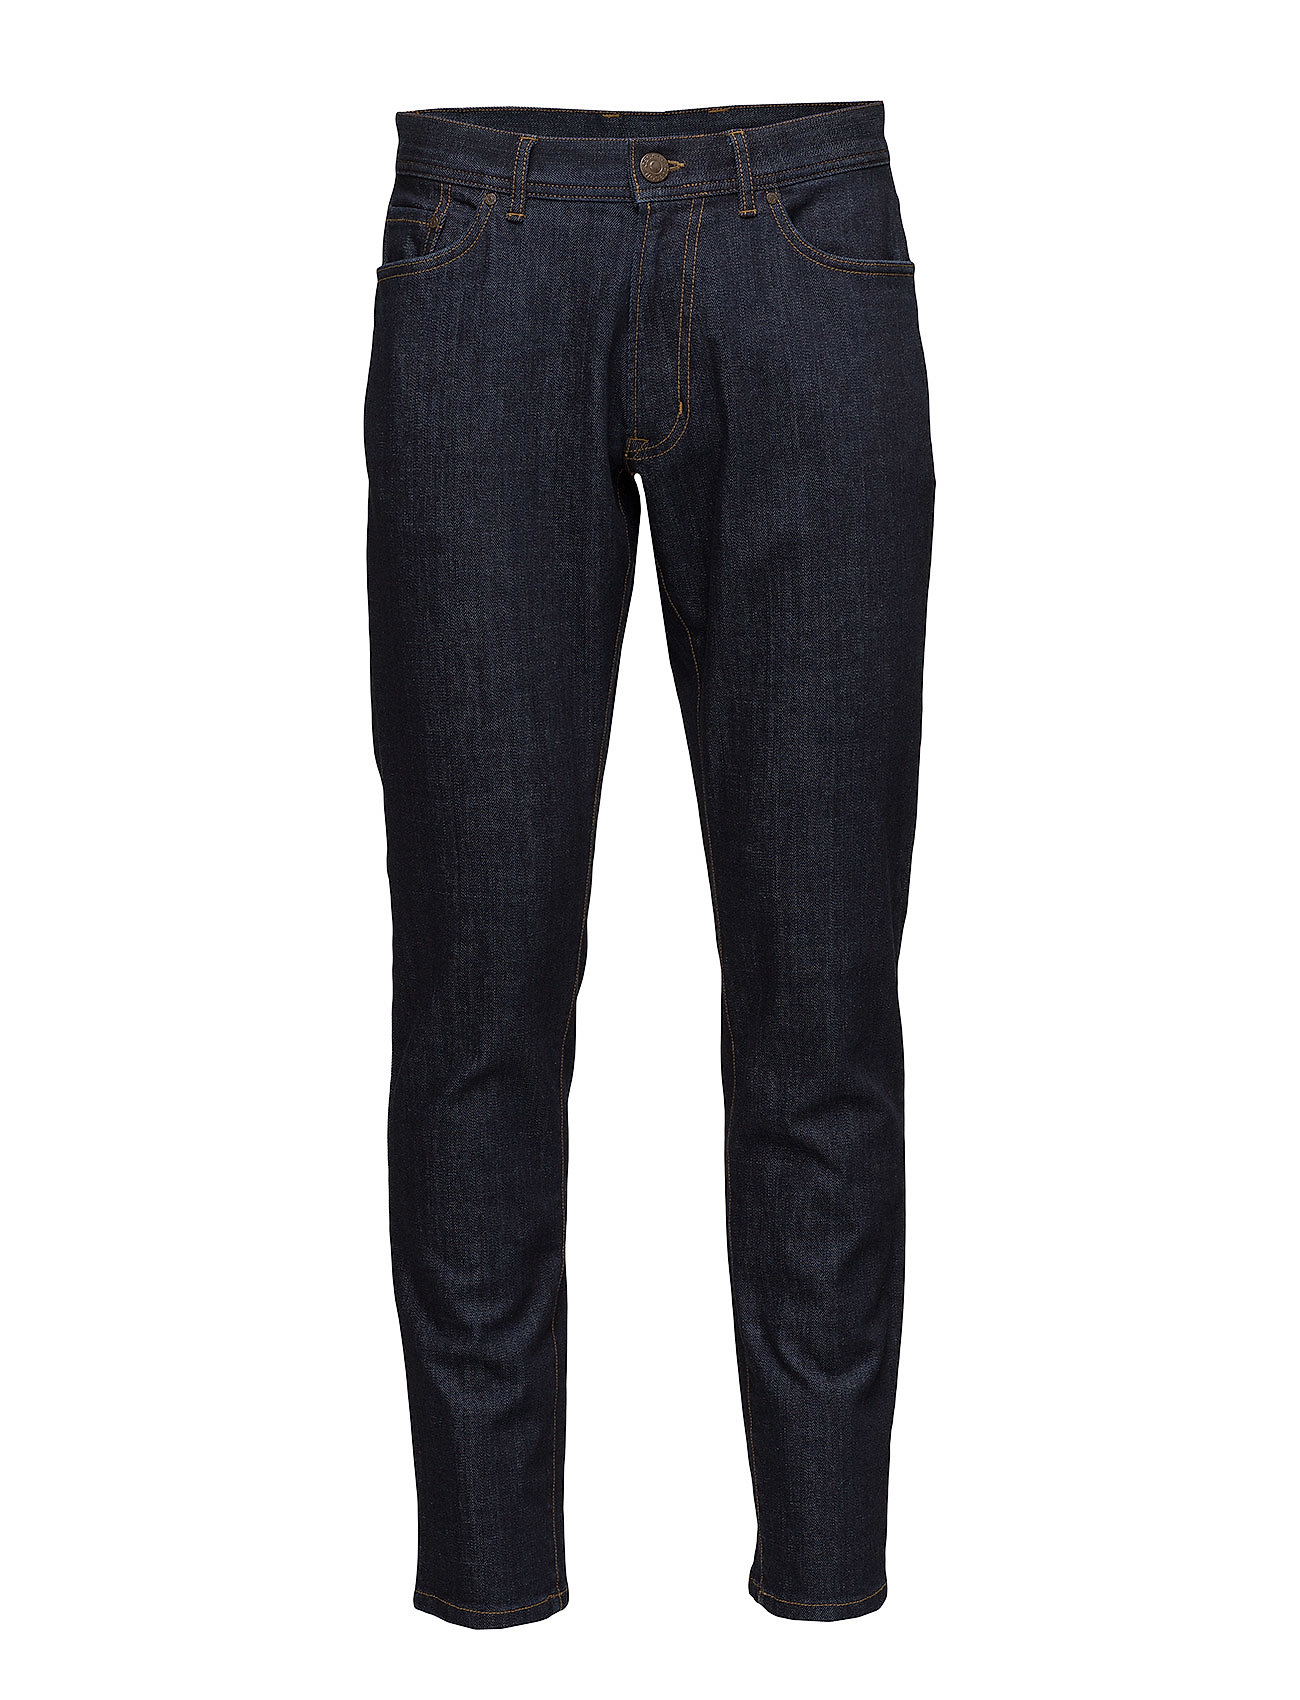 Oscar Jacobson Jacob Trousers - 211-NAVY